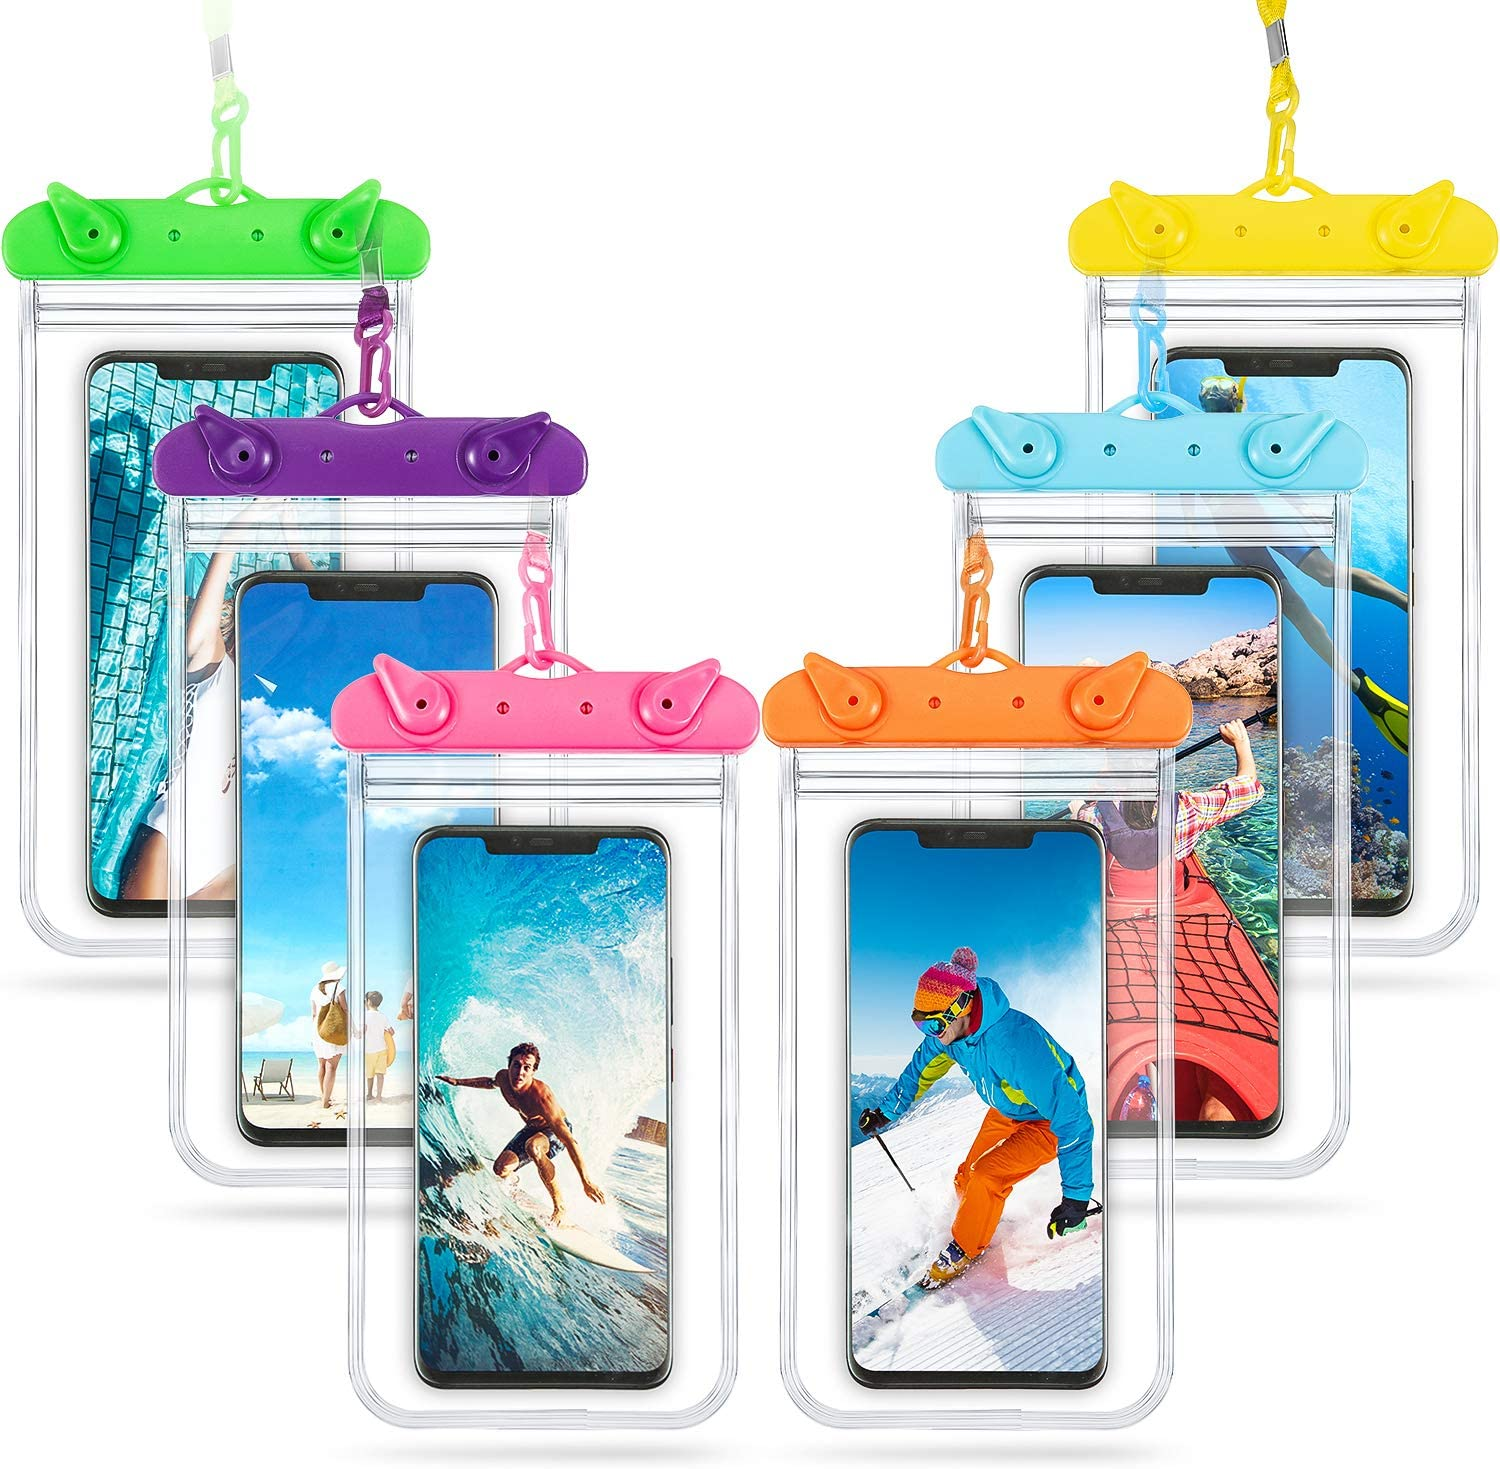 6 Universal Waterproof Phone Pouch Bag Underwater Case Clear Cellphone Dry Bag with Lanyard Swimming Snorkeling Water Sport Bag for Smartphone 6.9 Inch (Orange, Green, Purple, Aqua Blue, Yellow, Pink)